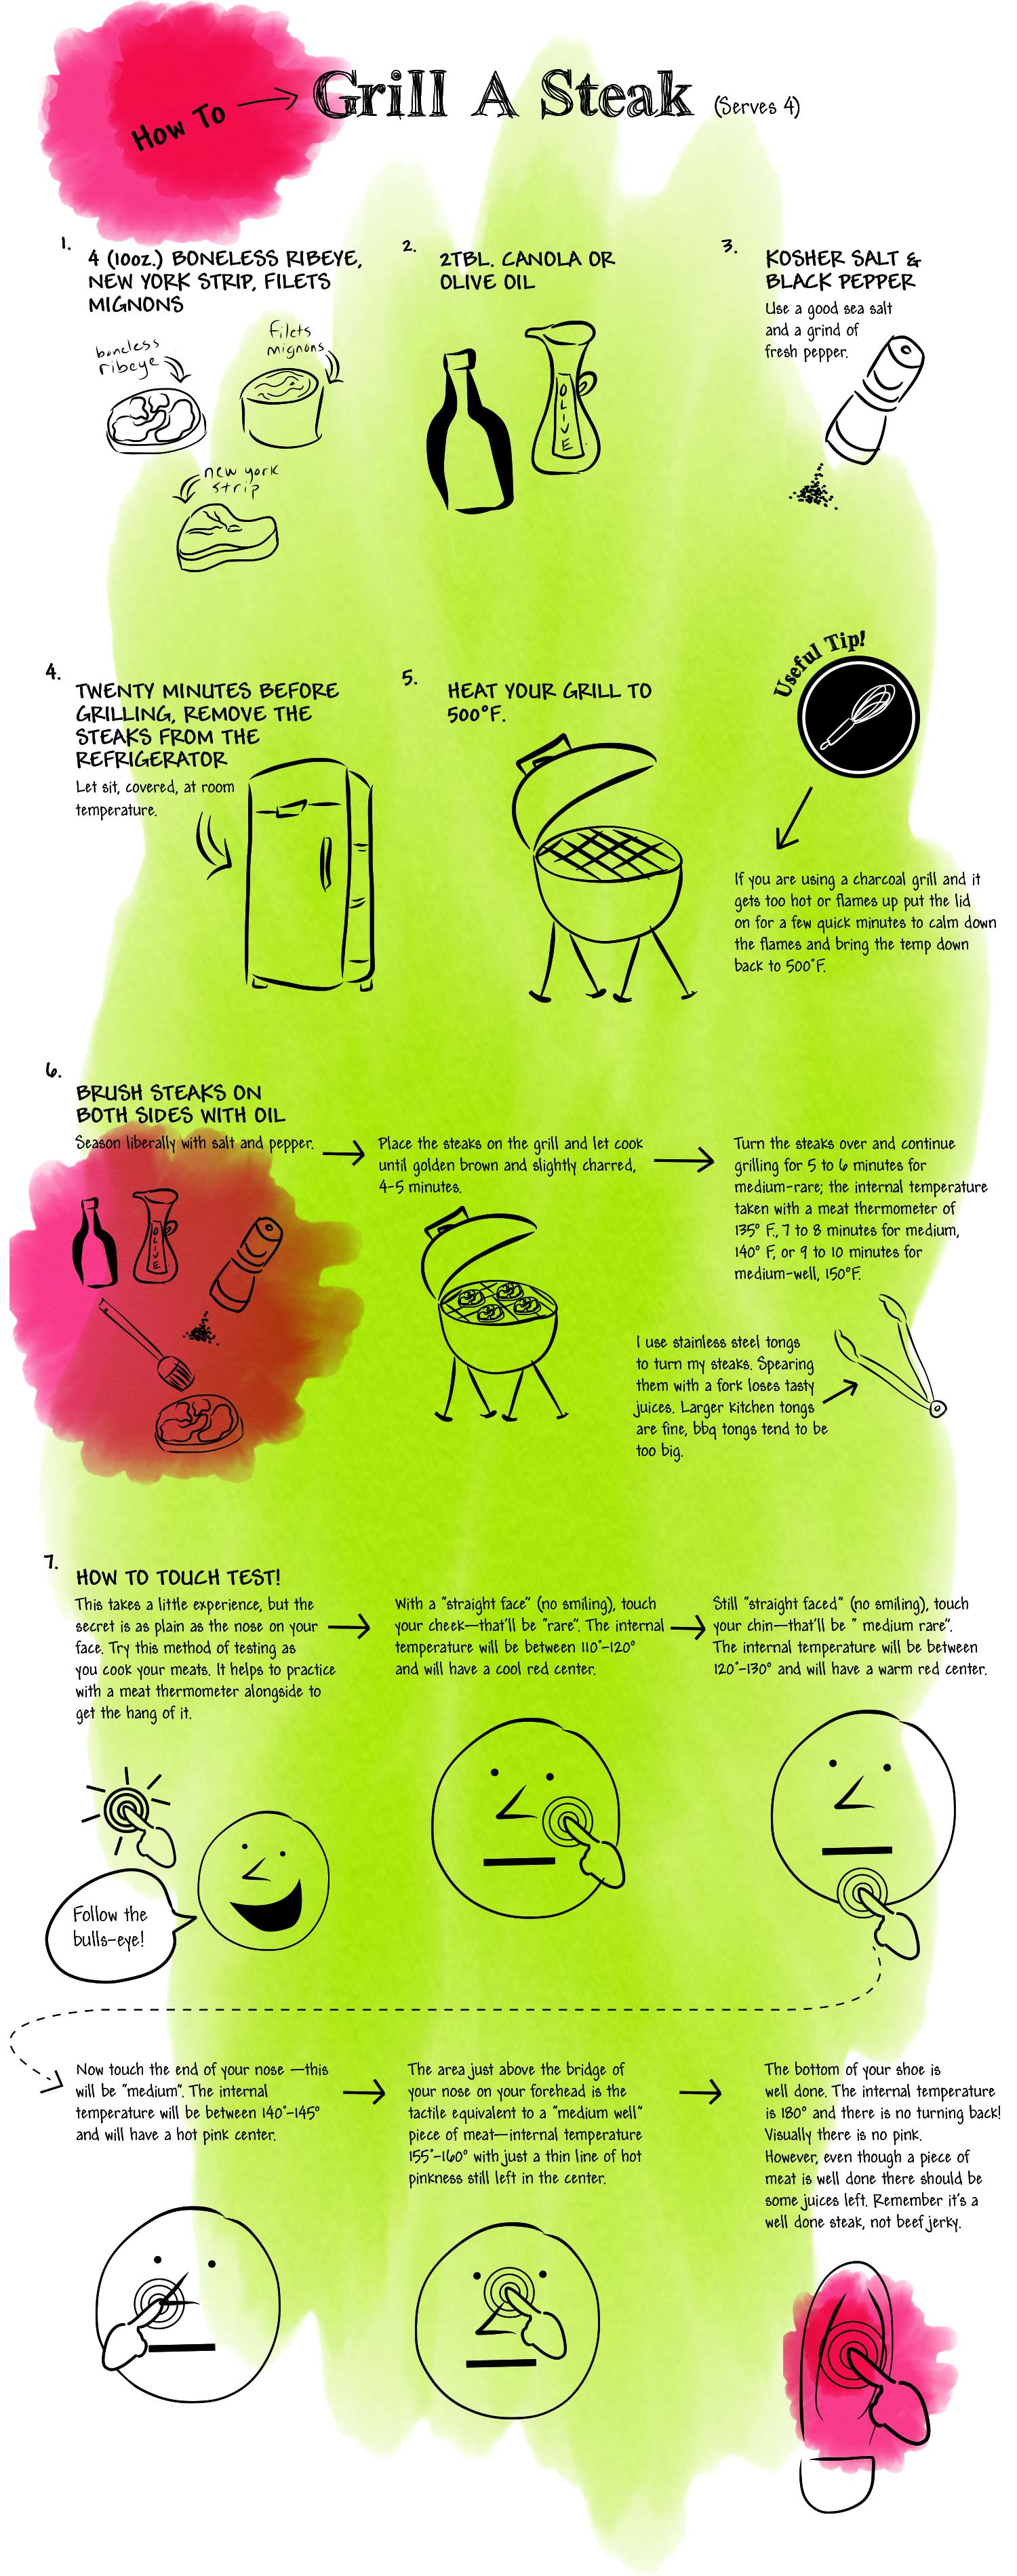 how-to-grill-a-steak_02.jpg